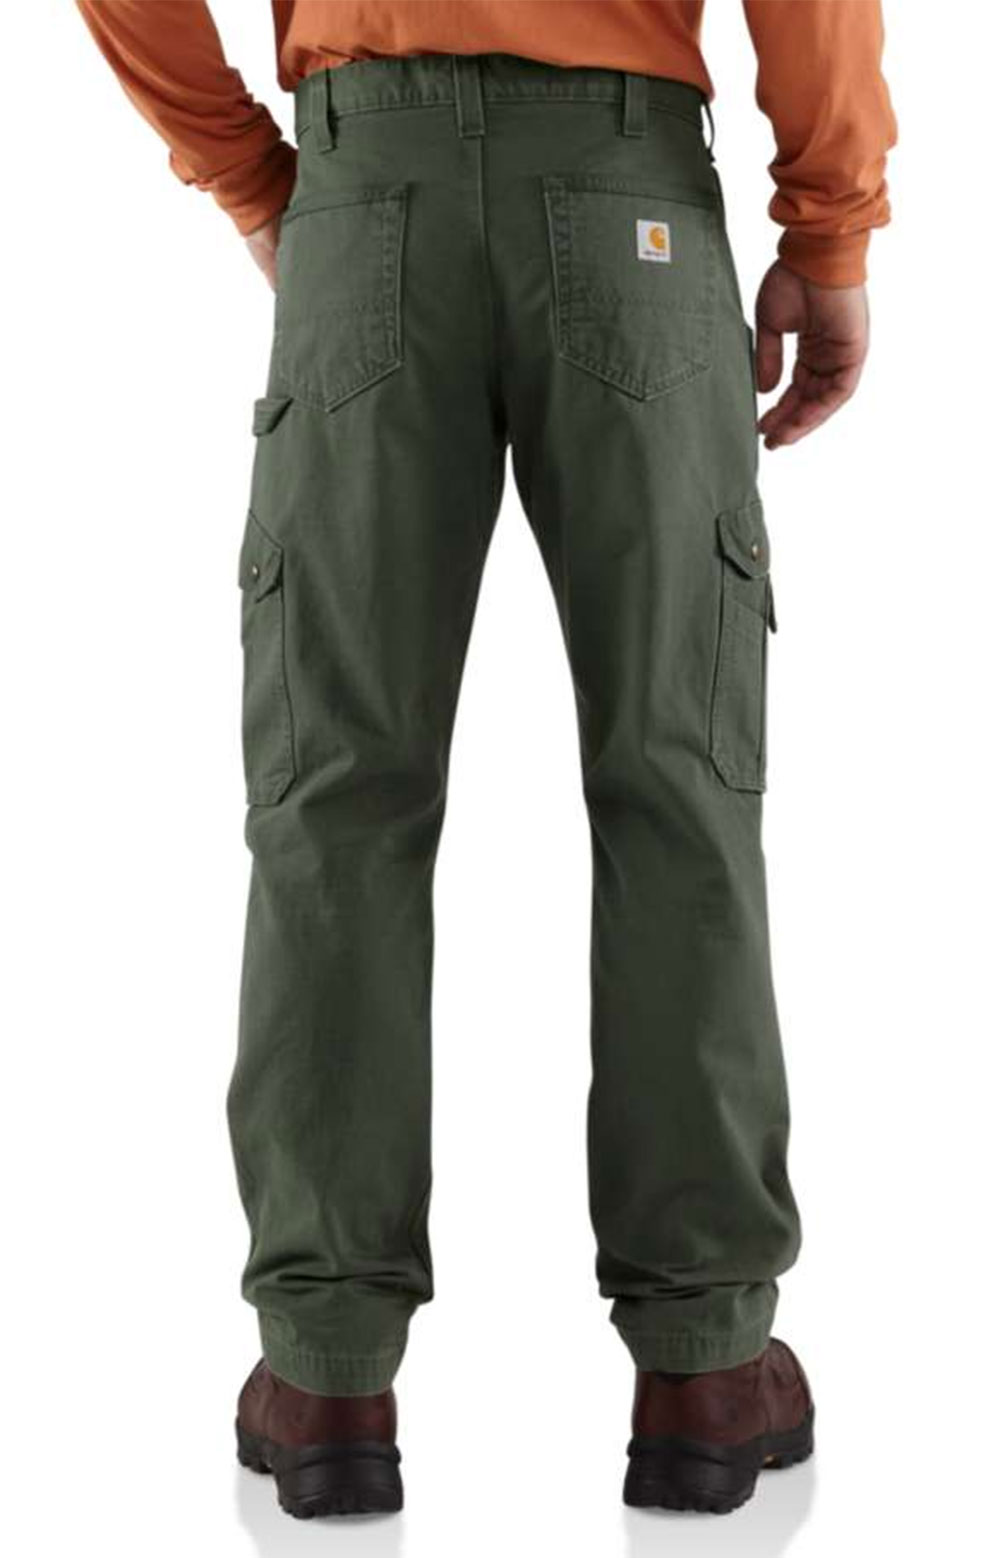 (B342) Cotton Ripstop Relaxed Fit Double Front Cargo Work Pant - Moss  2